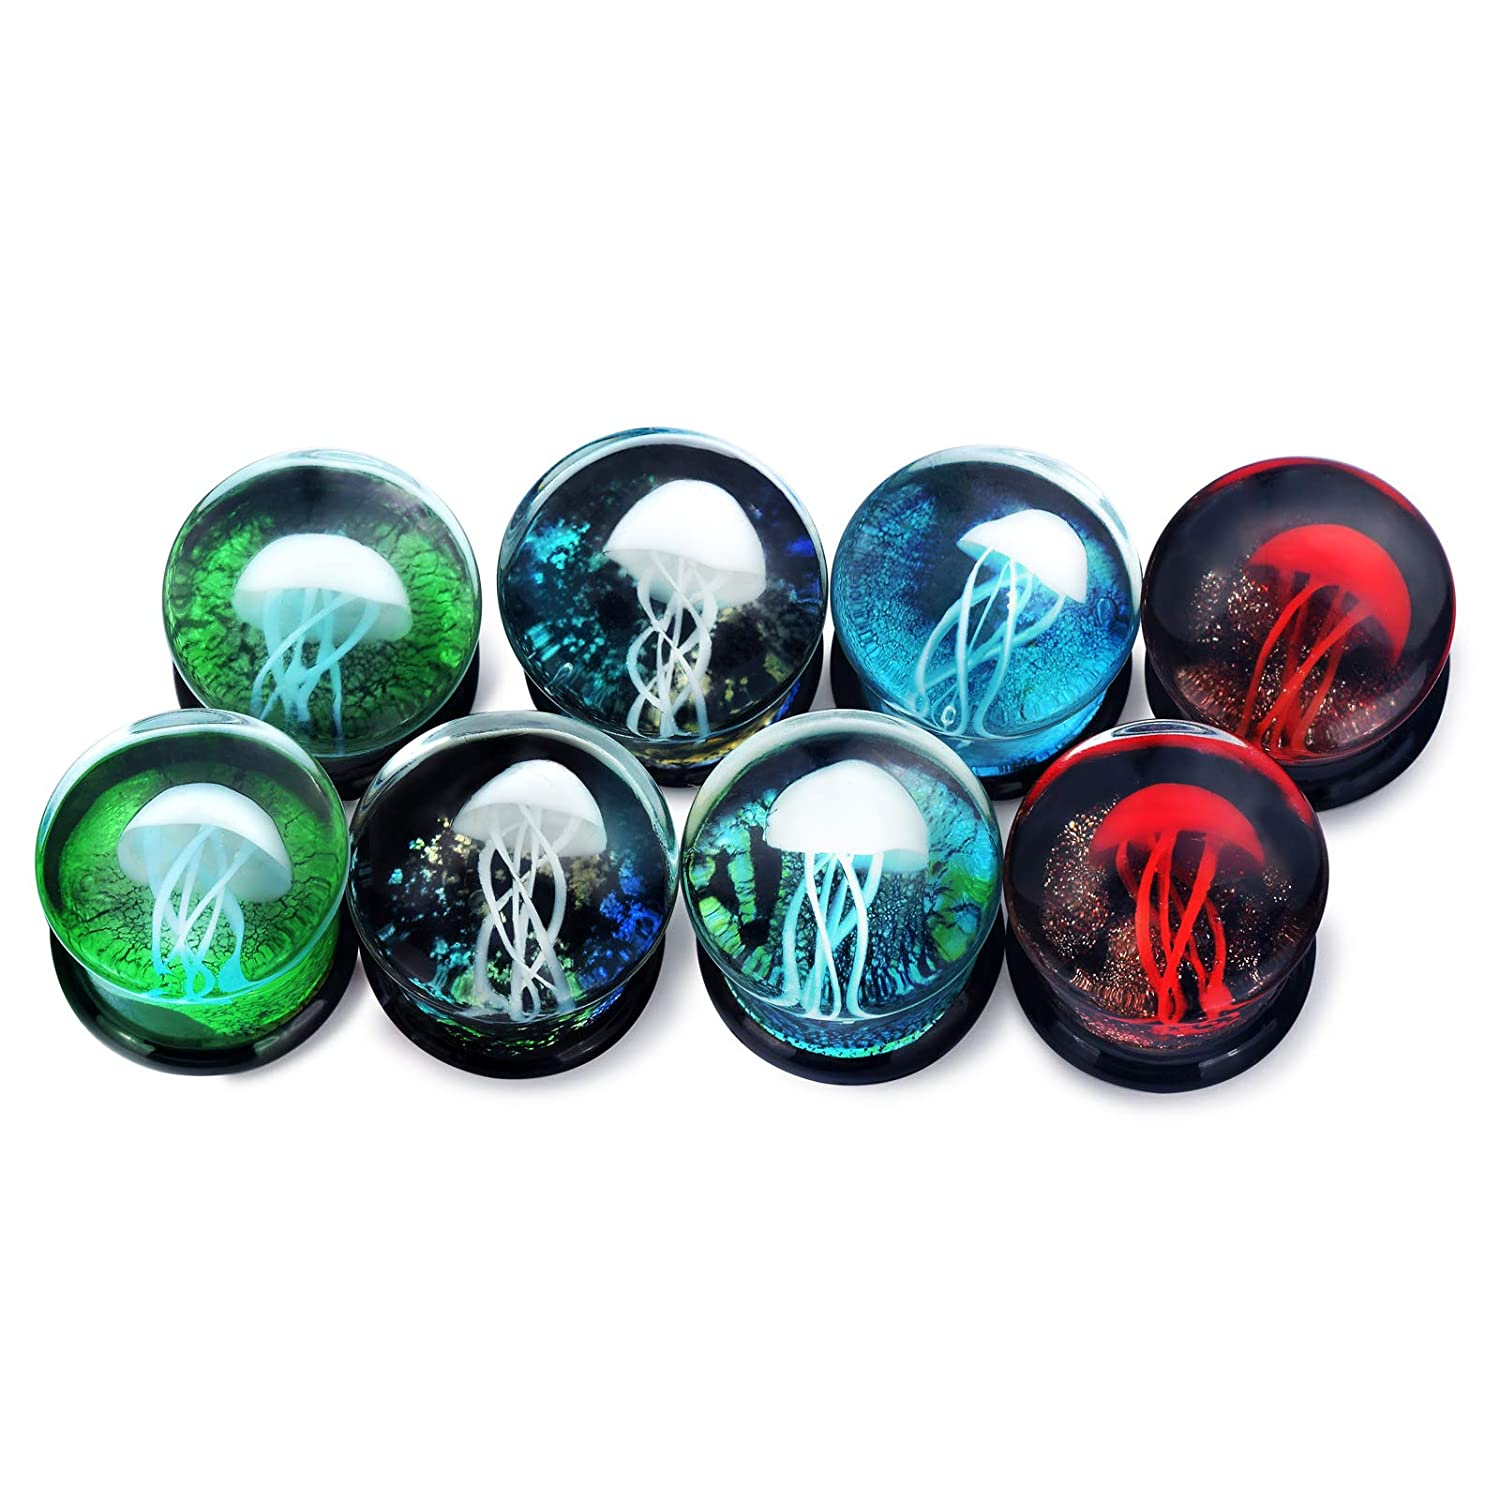 Lianrun 1Pair Glass Ocean Jellyfish Ear Plugs Gauges Expander Tunnels 6 Style to Choose Size 0g-5//8 Lianrunshangmao Co.Ltd SWK50289